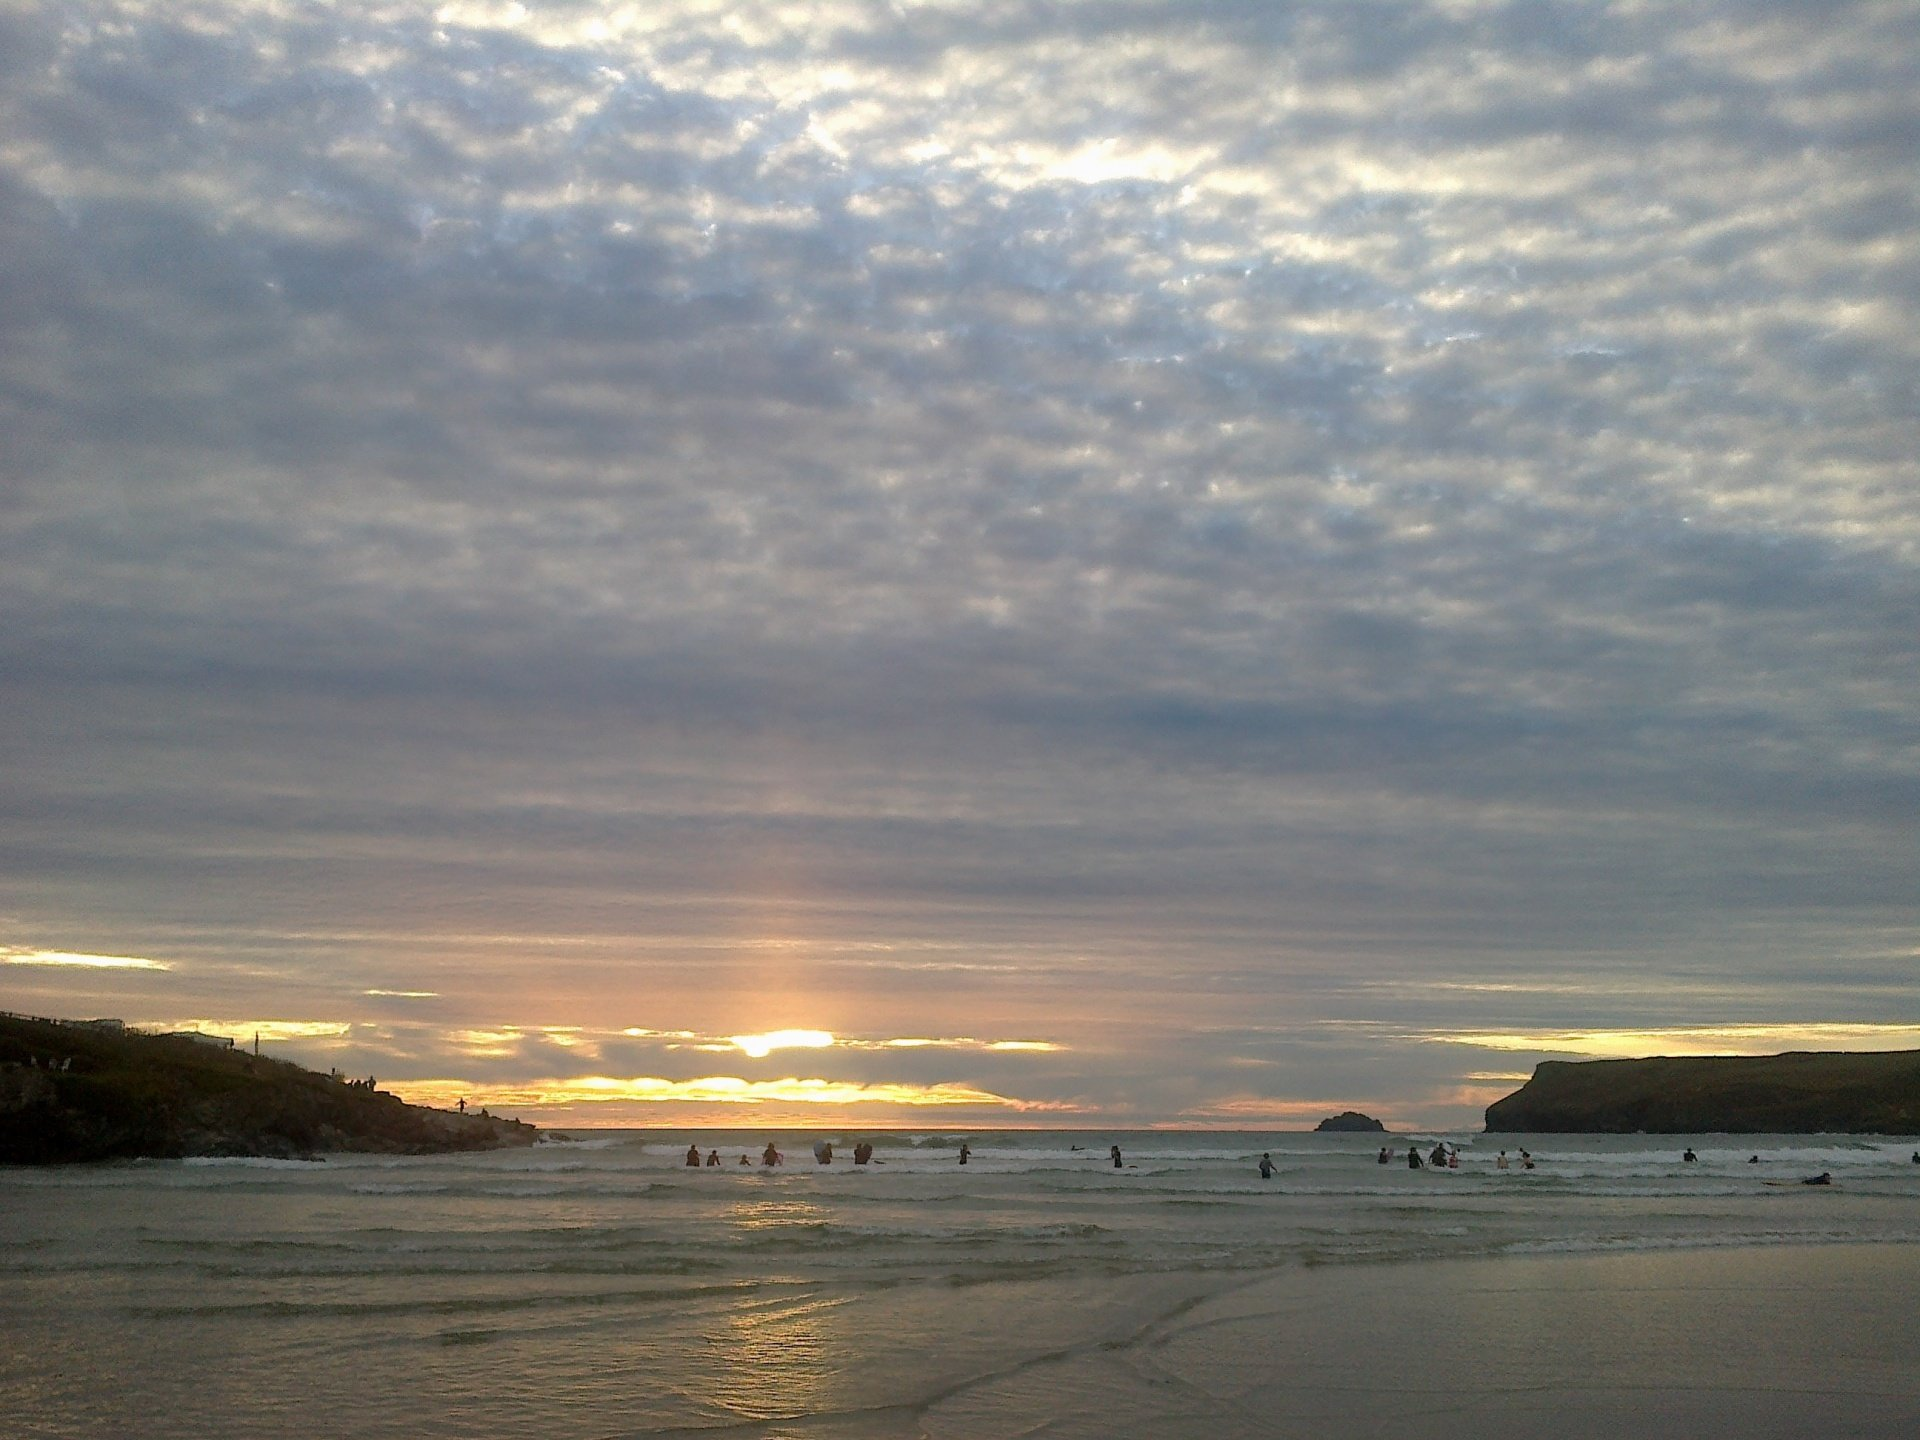 Nerdsurfer10's photo of Polzeath